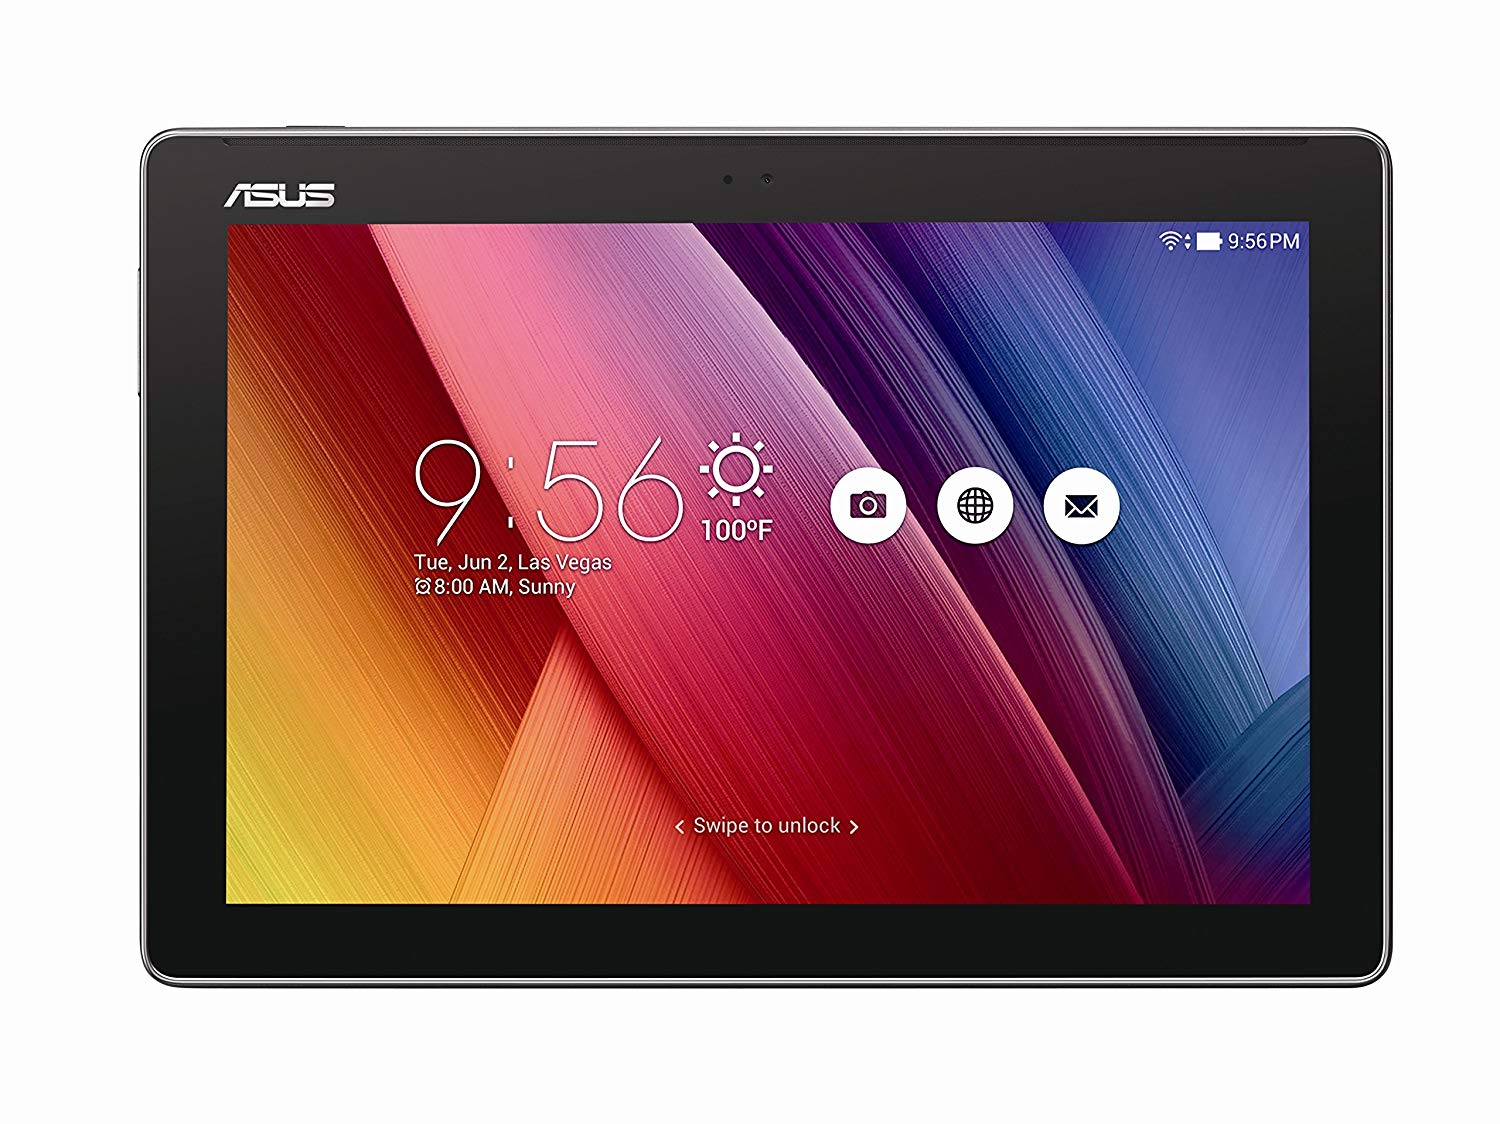 asus zenpad inch tablet computers accent tablette accessories mirror furniture set modern table light big lamps battery operated indoor small square kitchen acrylic coffee tray